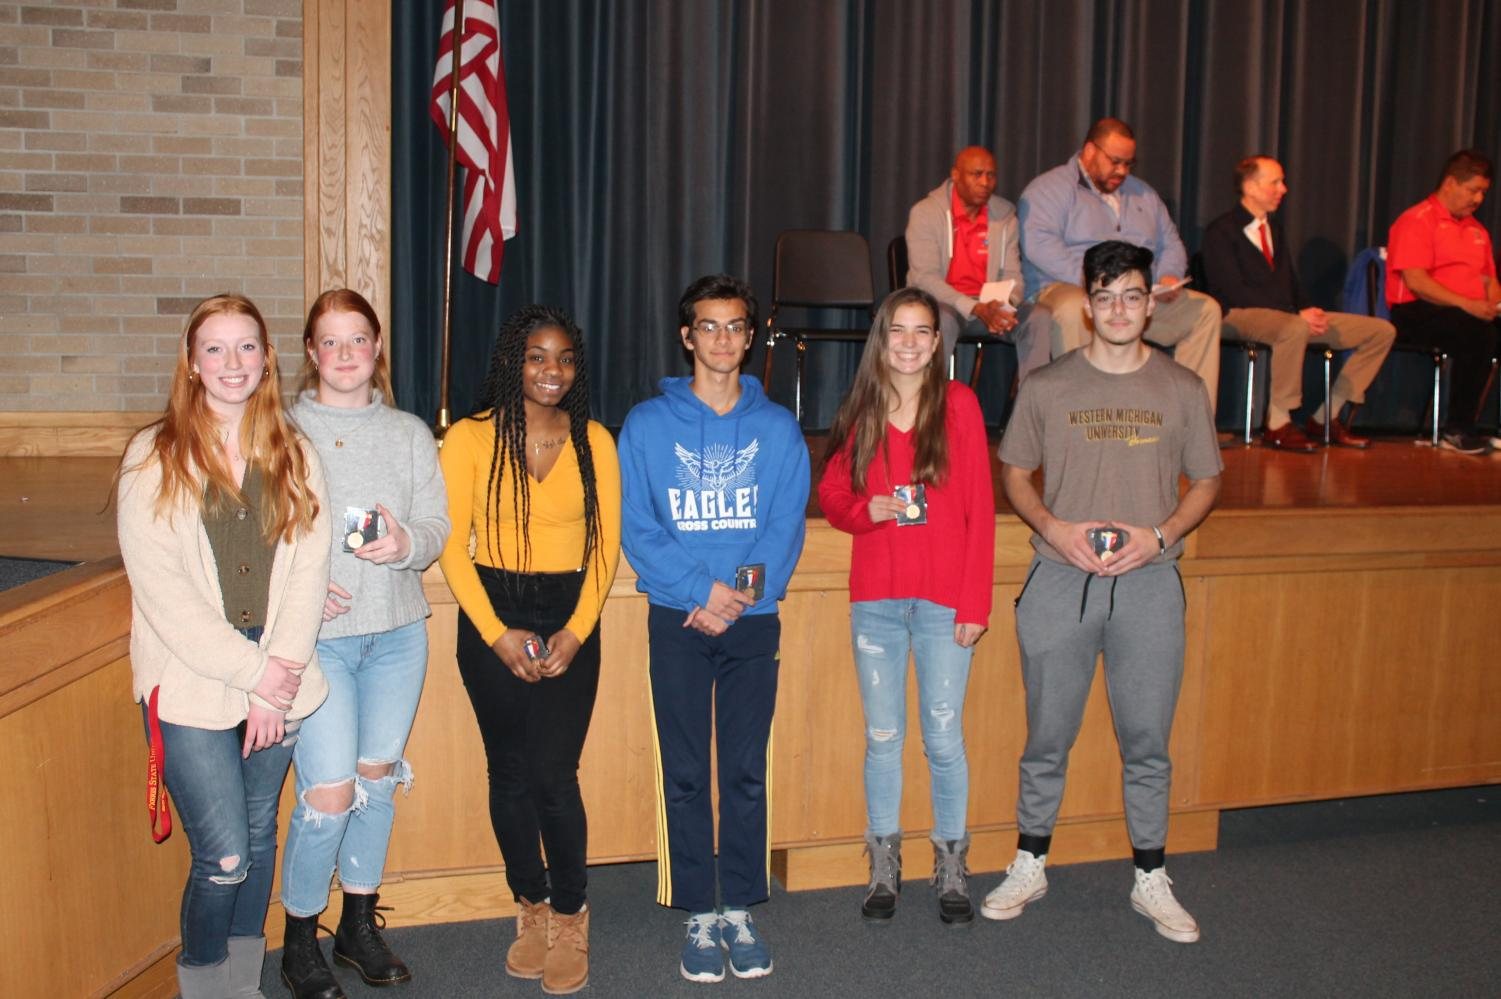 2019 Kiwanis Award Winners From left to right: Aubrey Richardson (Volleyball), Logan Hansen (Soccer), Alicia Jacobs (Cheer), Sami Mirza (Cross Country), Maddie Mischak (Cross Country), Miguel Zyniewicz (Football)